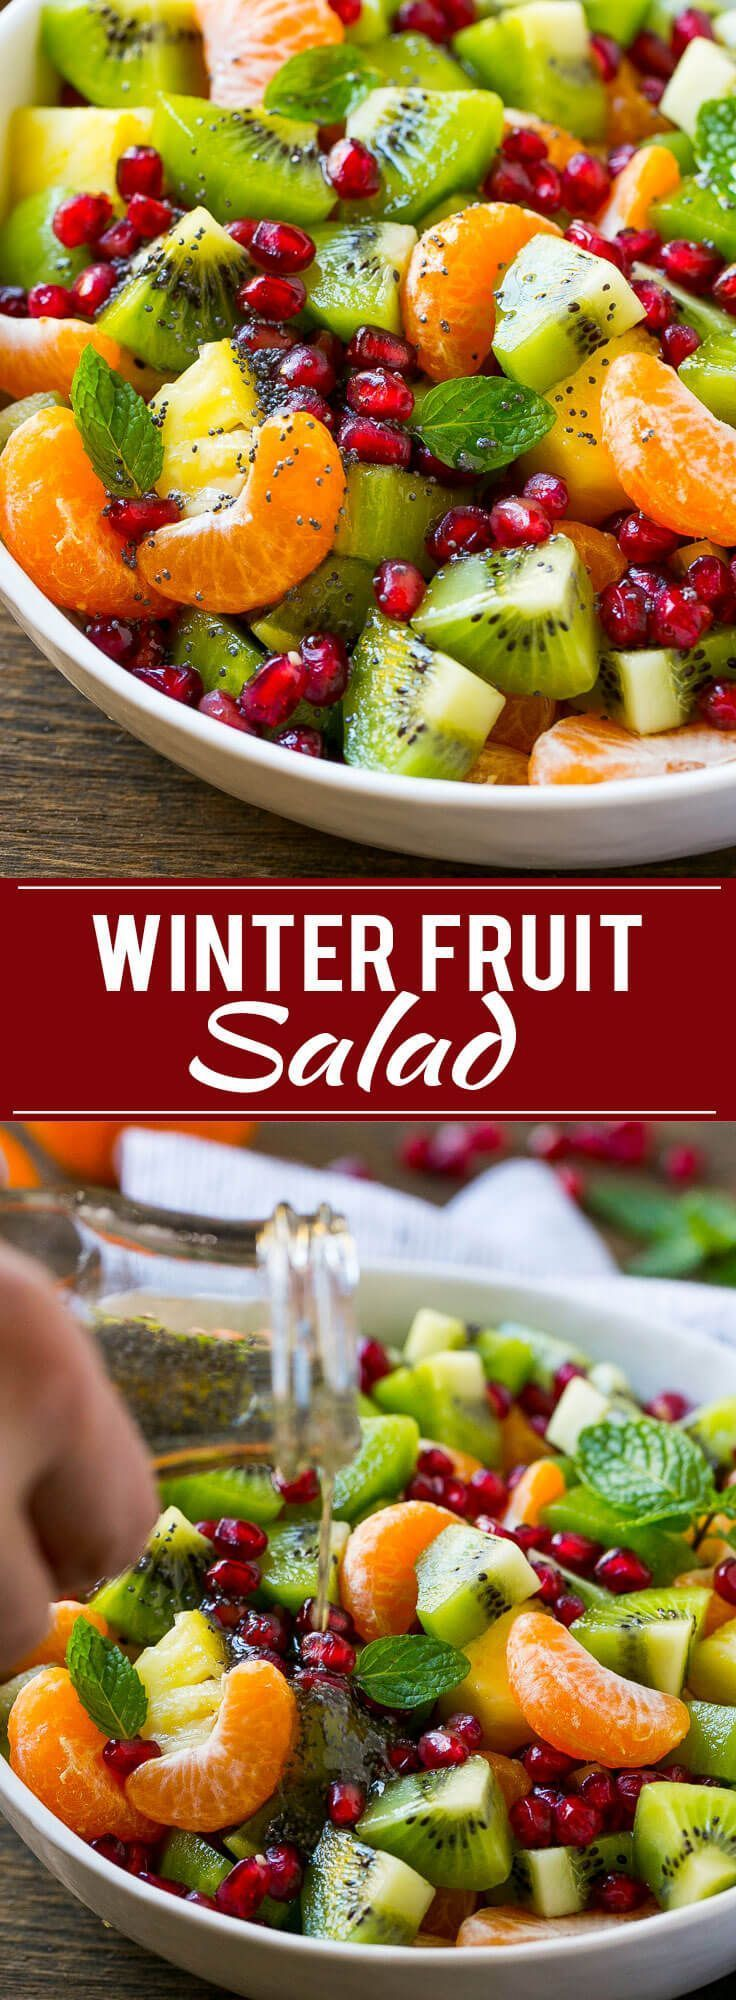 This winter fruit salad is tossed in a light honey poppyseed dressing for a quick and colorful side dish that goes perfectly with a bowl of soup.